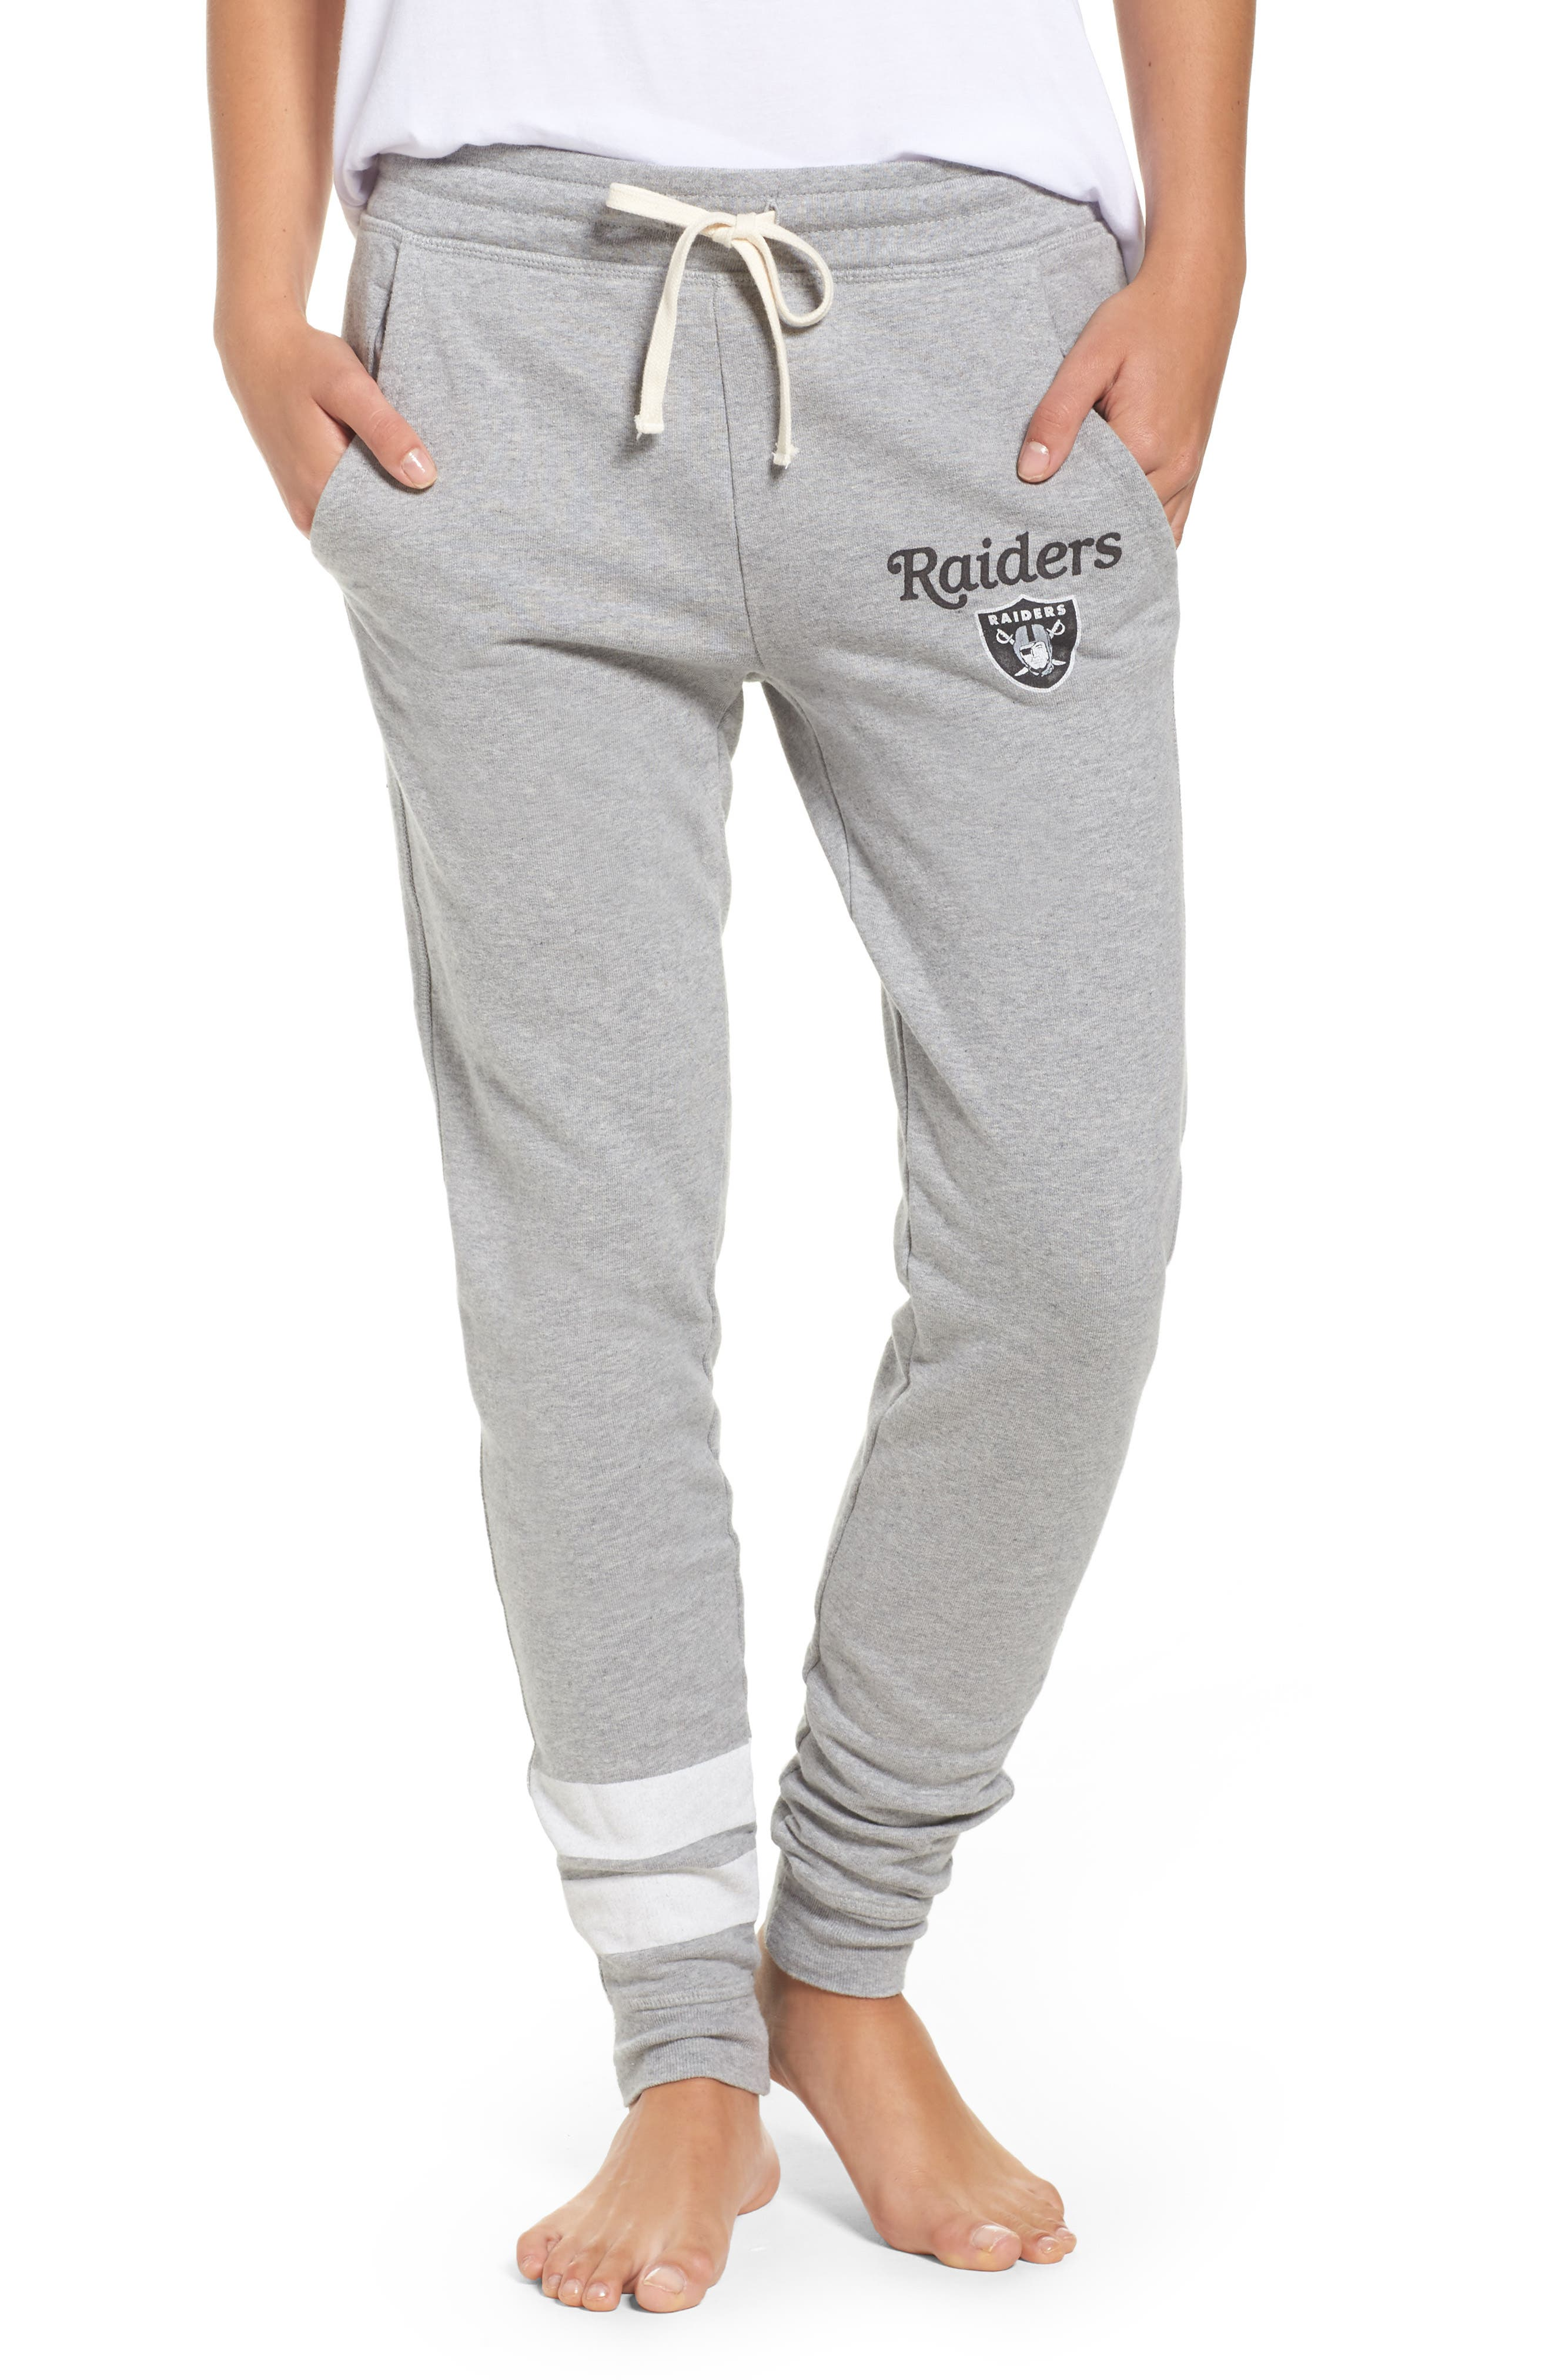 Alternate Image 1 Selected - Junk Food NFL Oakland Raiders Sweatpants